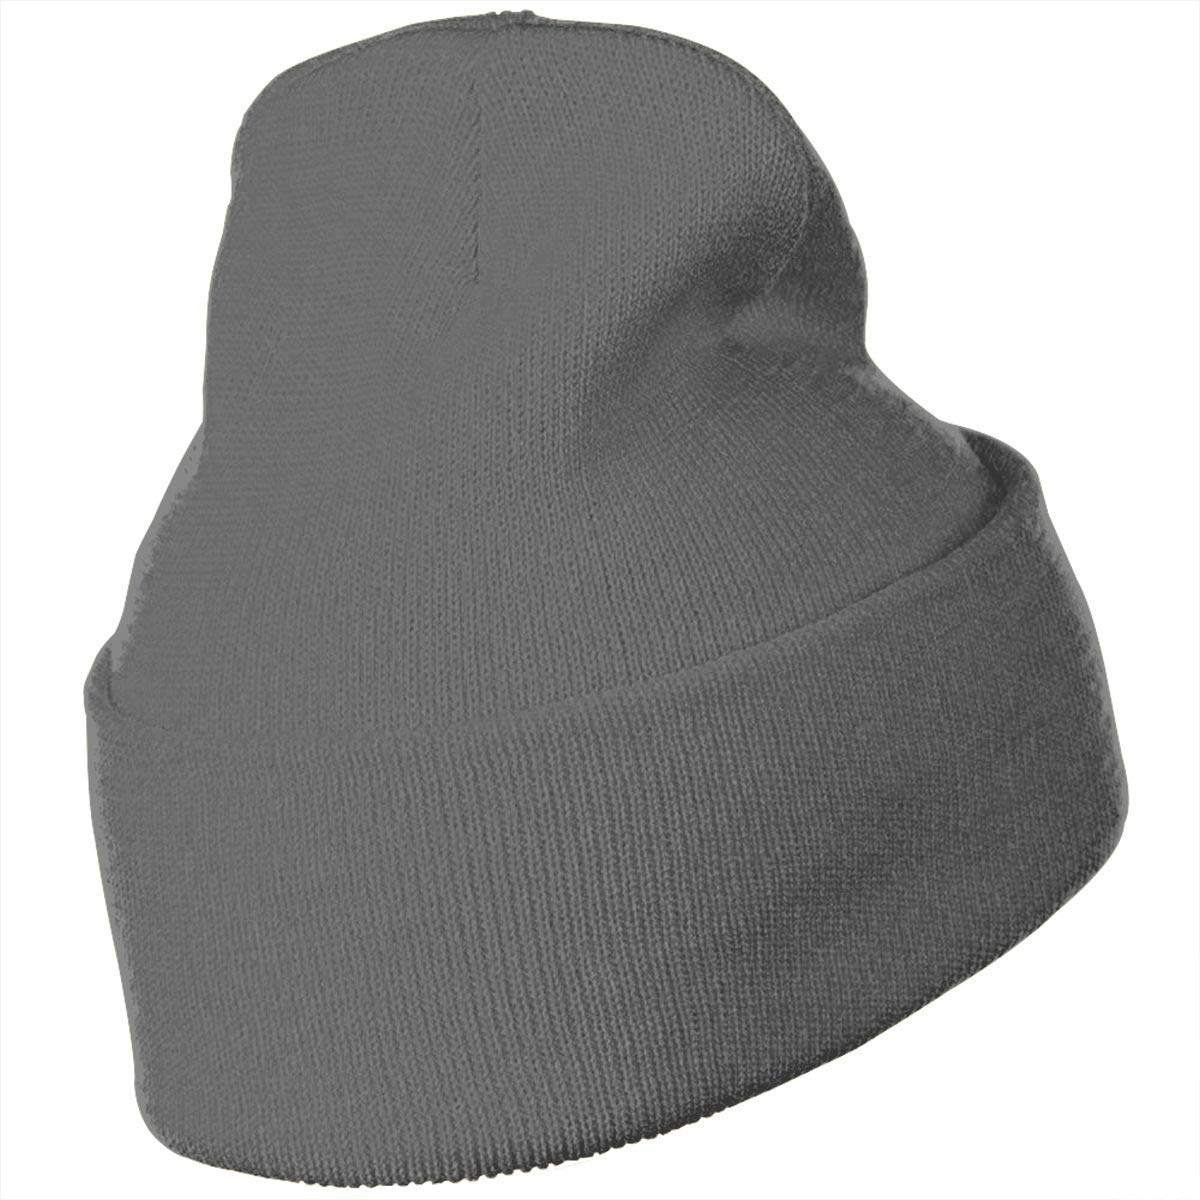 Flamingos Hat for Men and Women Winter Warm Hats Knit Slouchy Thick Skull Cap Black